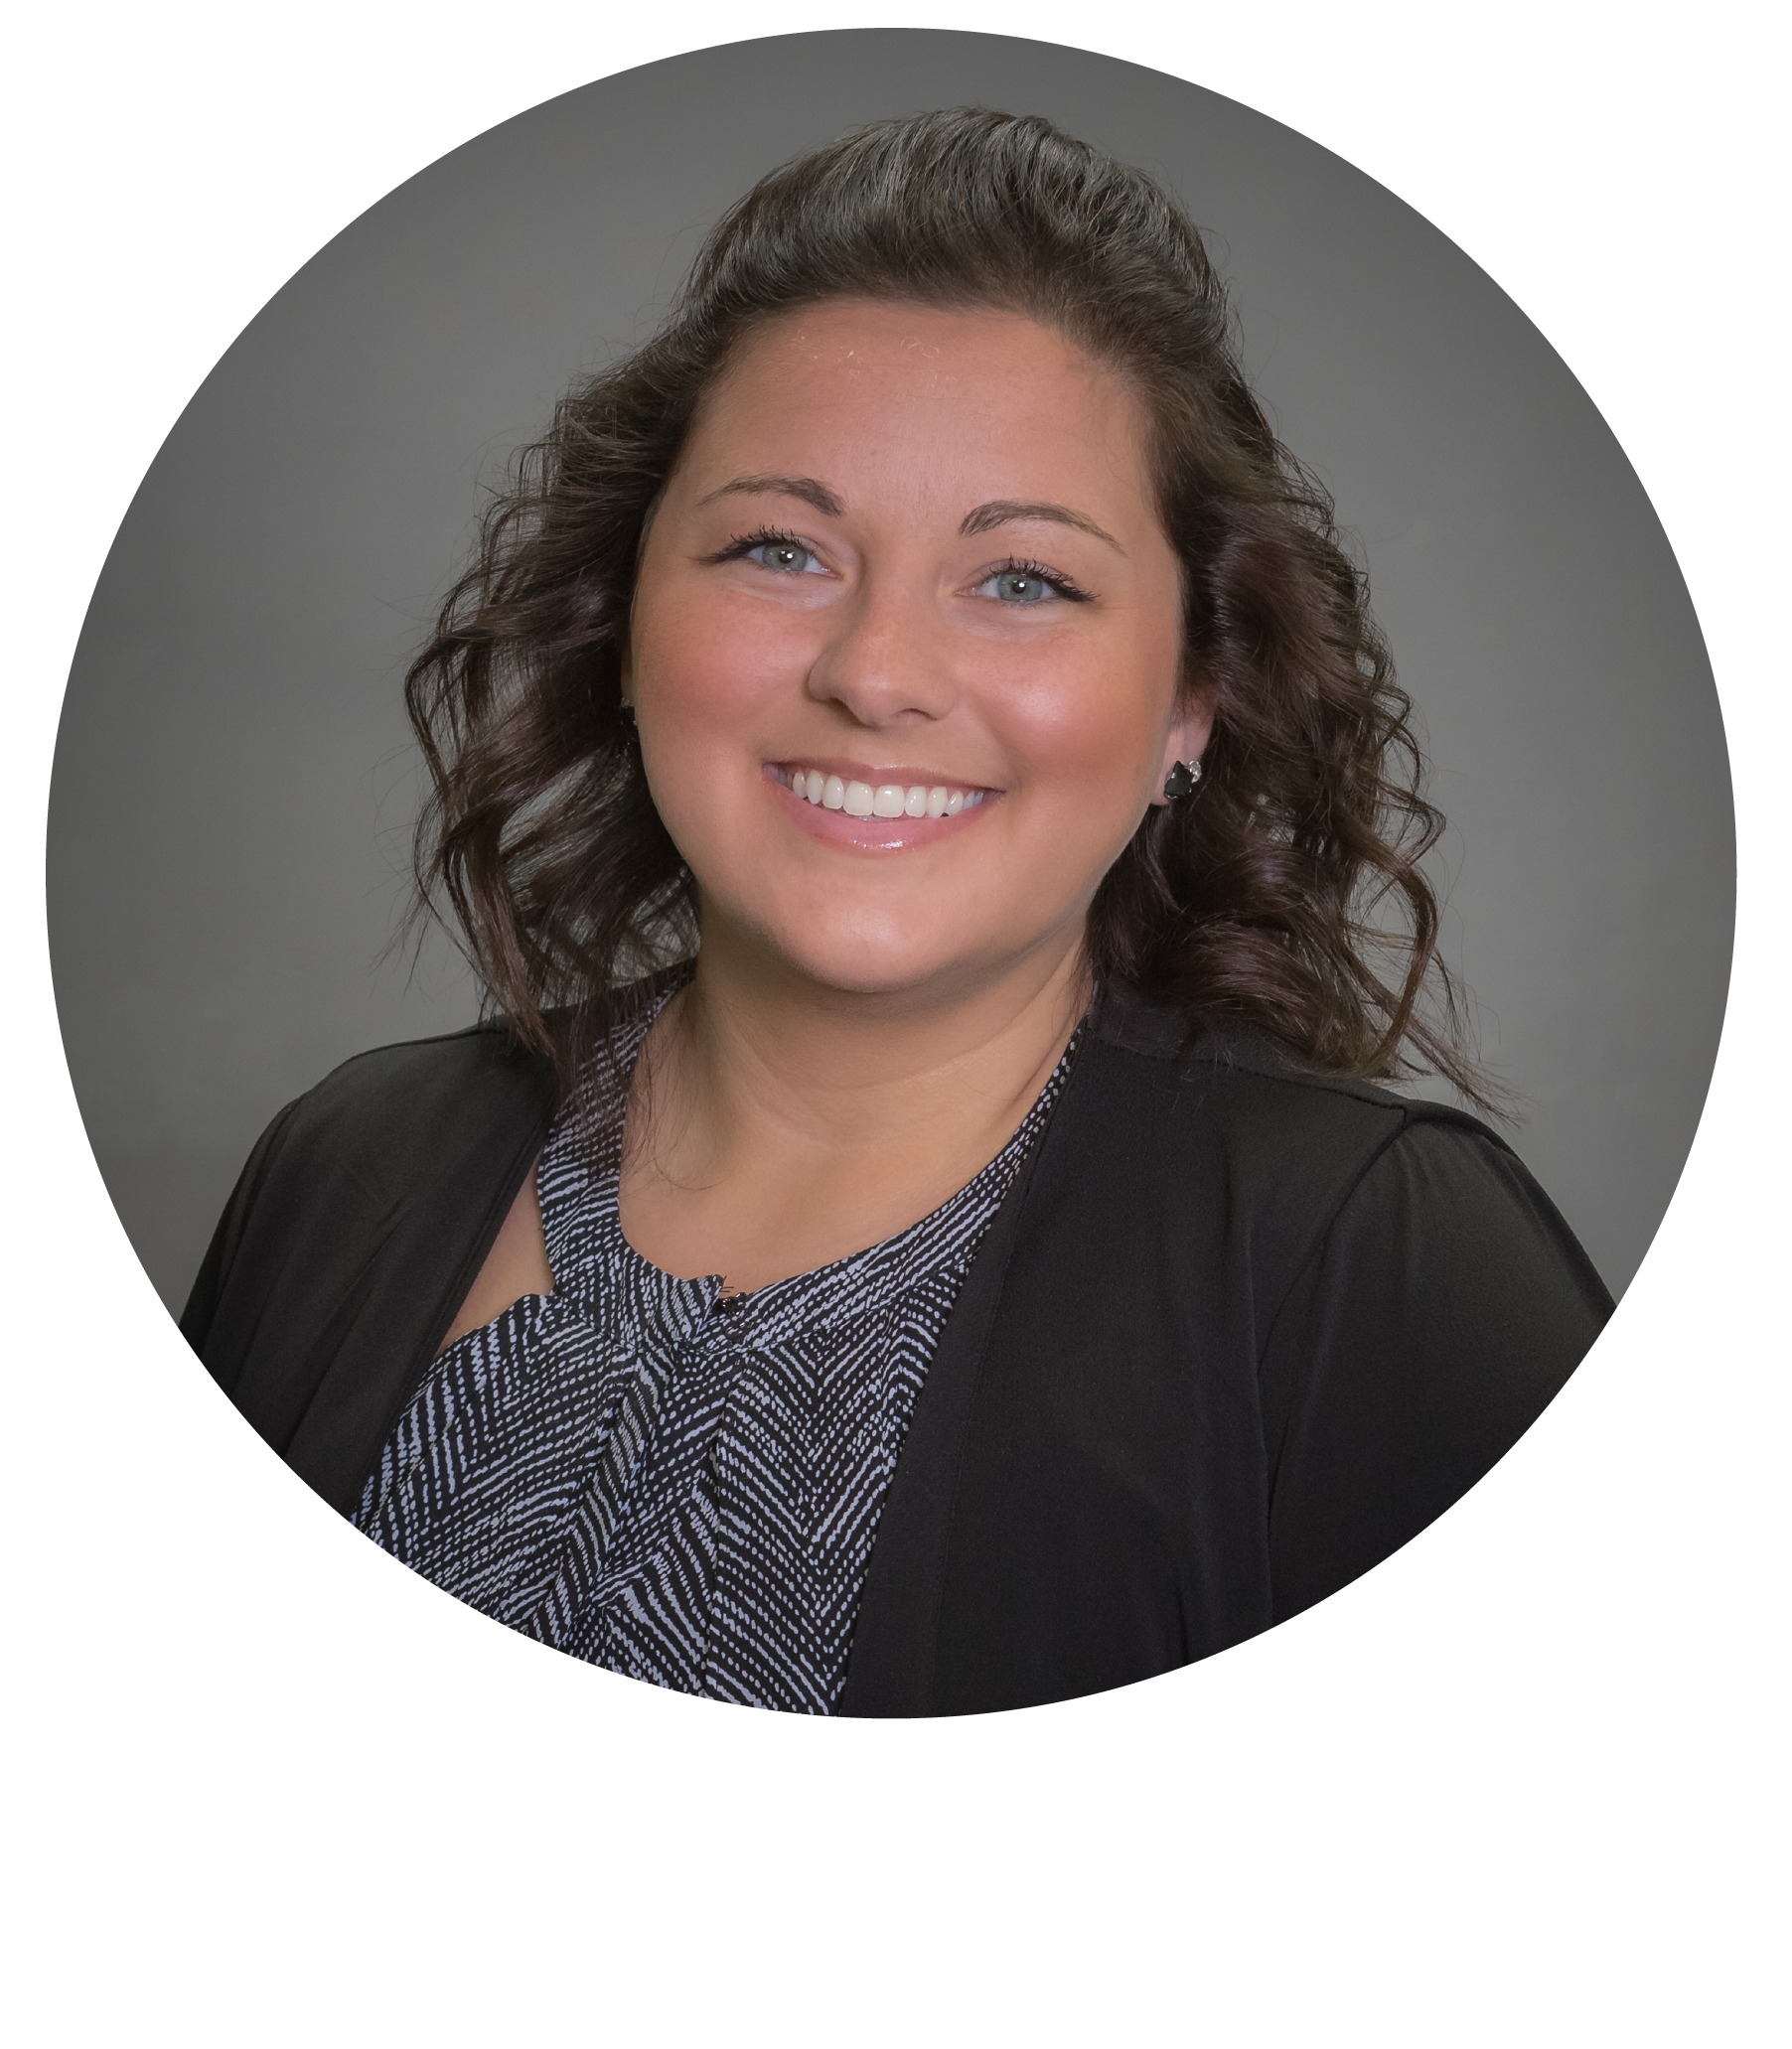 Alicia Meyer, EA - Alicia joined the firm in December 2017. Alicia is an Enrolled Agent and can represent clients in all 50 states. She has completed NTPI Level 2 and is in the process of completing Level 3. She serves on the Finance and Budget Committee with the National Association of Enrolled Agents - (NAEA). She also serves on the Education Committee with the Missouri Society of Enrolled Agents. She is also a QuickBooks ProAdvisor; Desktop and Online.She has several years of experience with Payroll, Payroll Tax Preparation, Bookkeeping, and Individual and Business Tax Preparation. She works closely with her clients throughout the year to provide timely Financial Statements and tax guidance. In her free time, Alicia and her husband enjoy spending quality time with their family and friends. They also have a passion for serving in their church community, where they lead the young adult ministry.